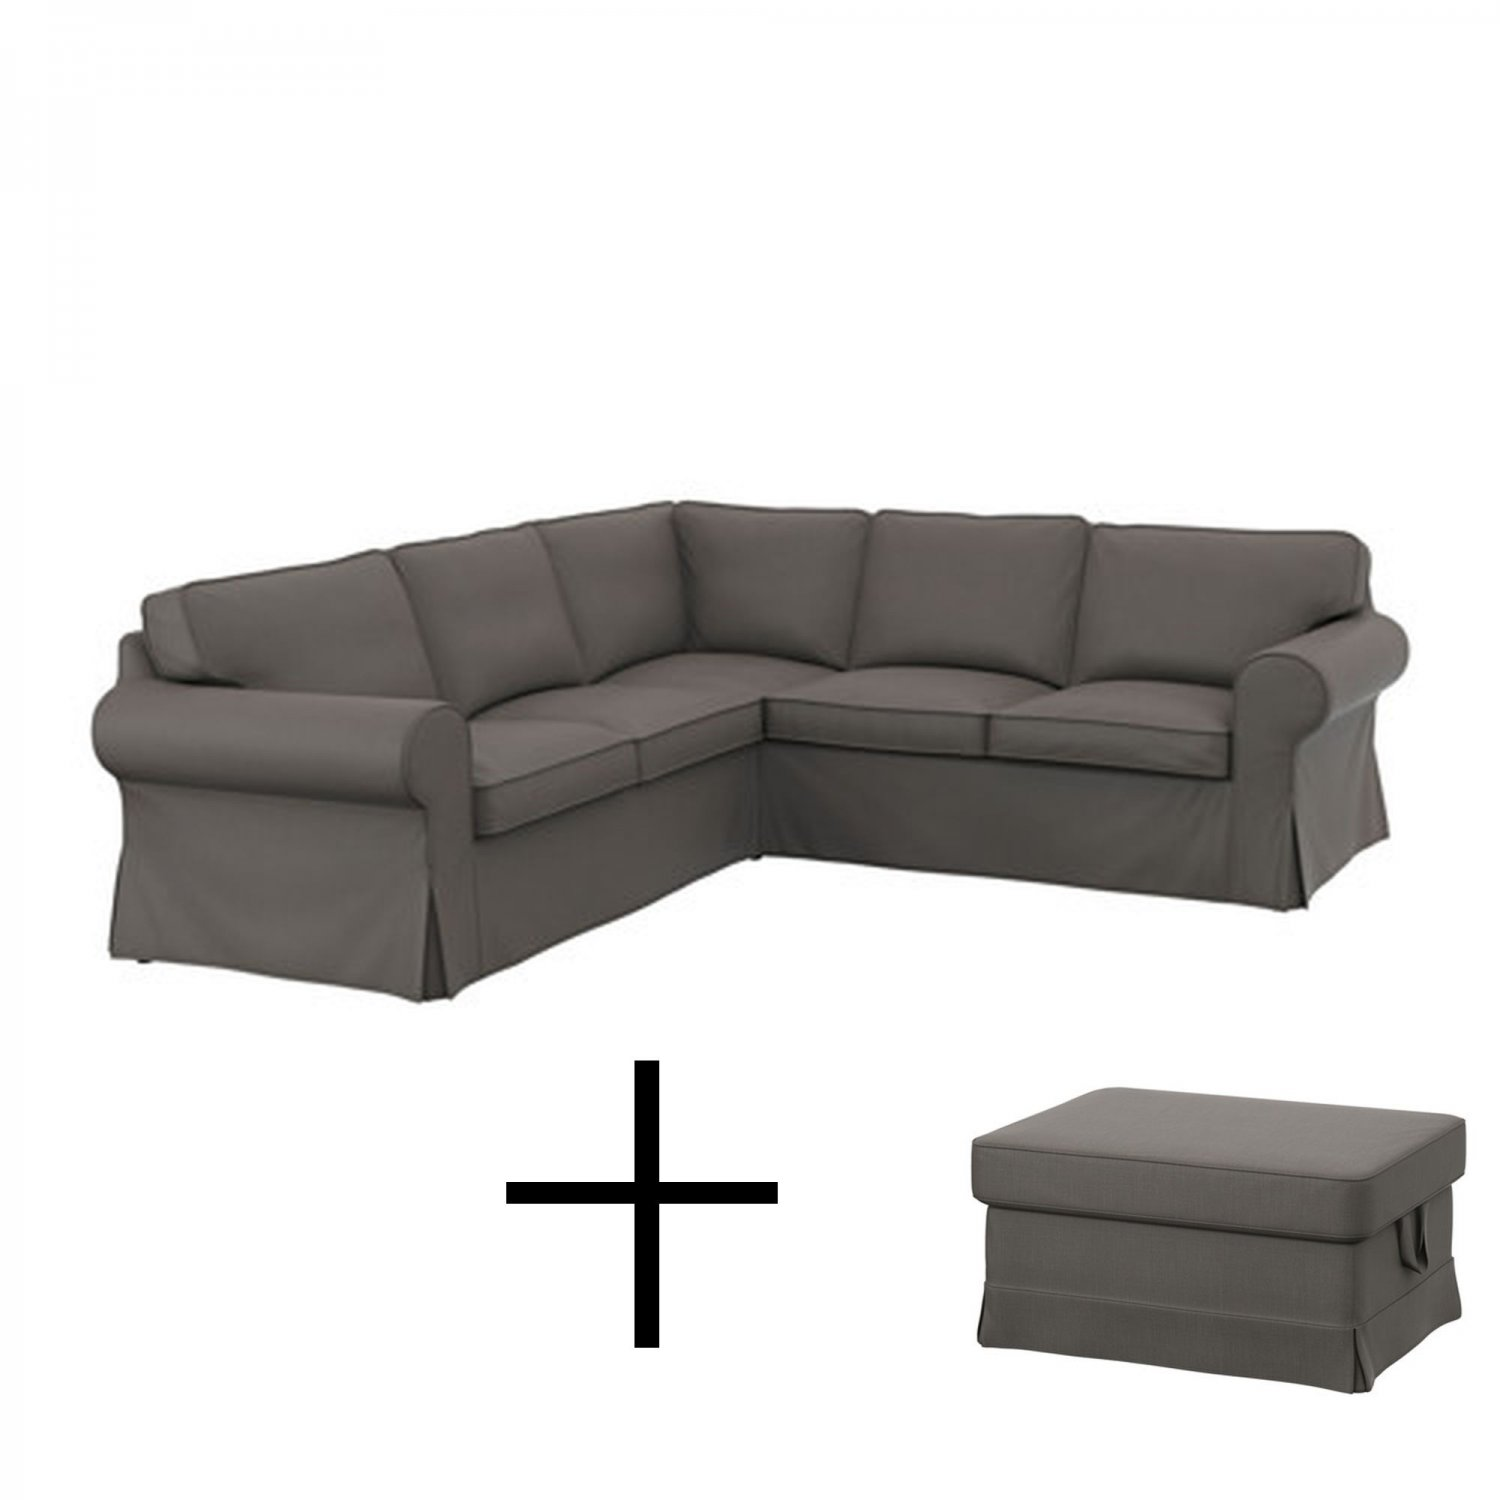 gray chair and ottoman slipcovers design types ikea ektorp 2 432 corner sofa footstool covers slipcover